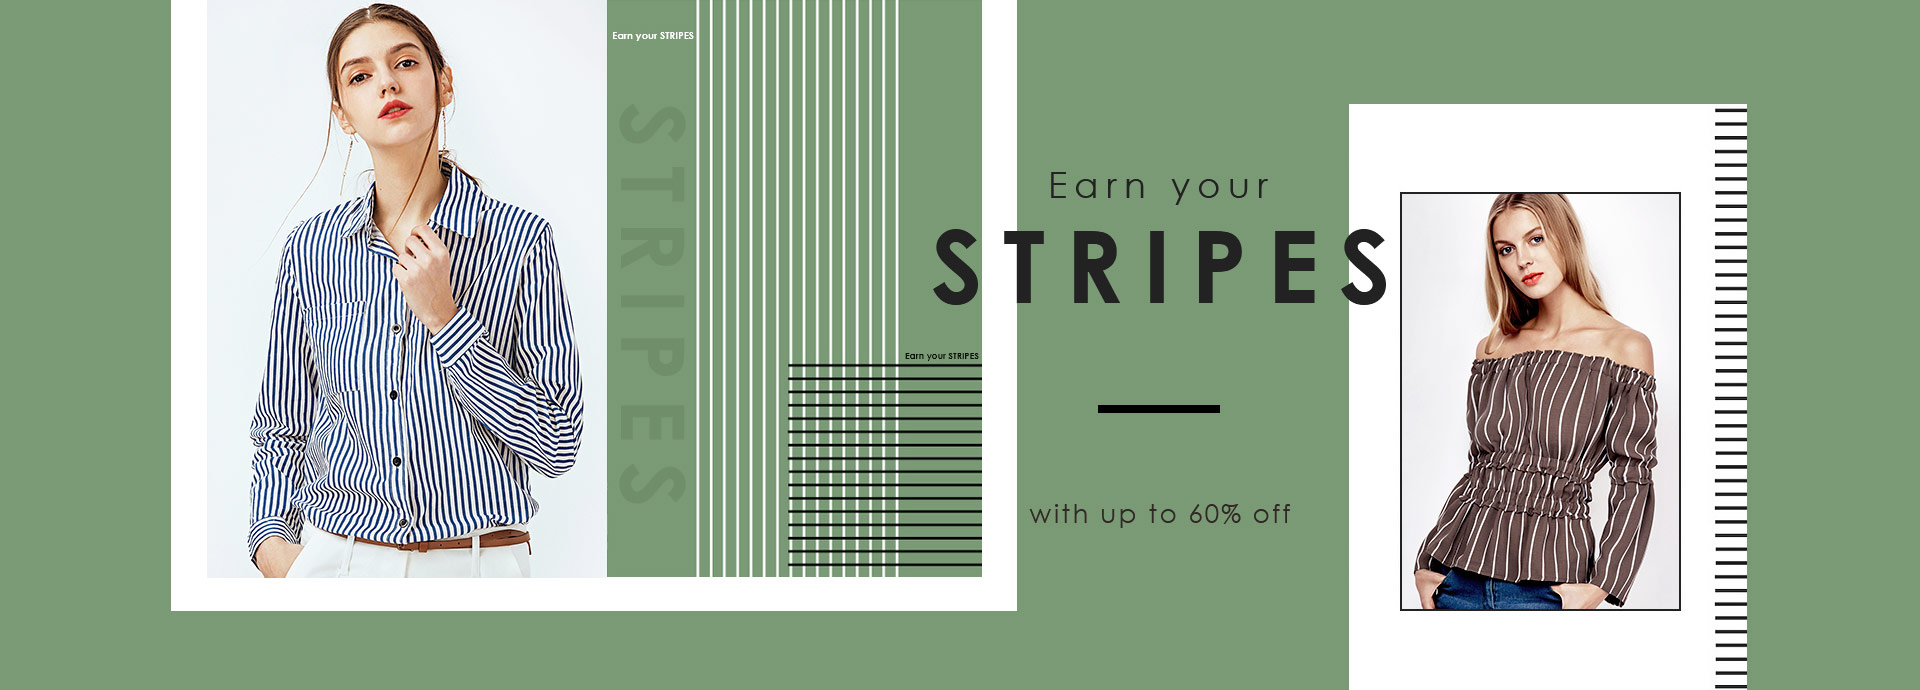 https://uidesign.zaful.com/Z/images/promotion/2017/striped/1920x690a-en.jpg